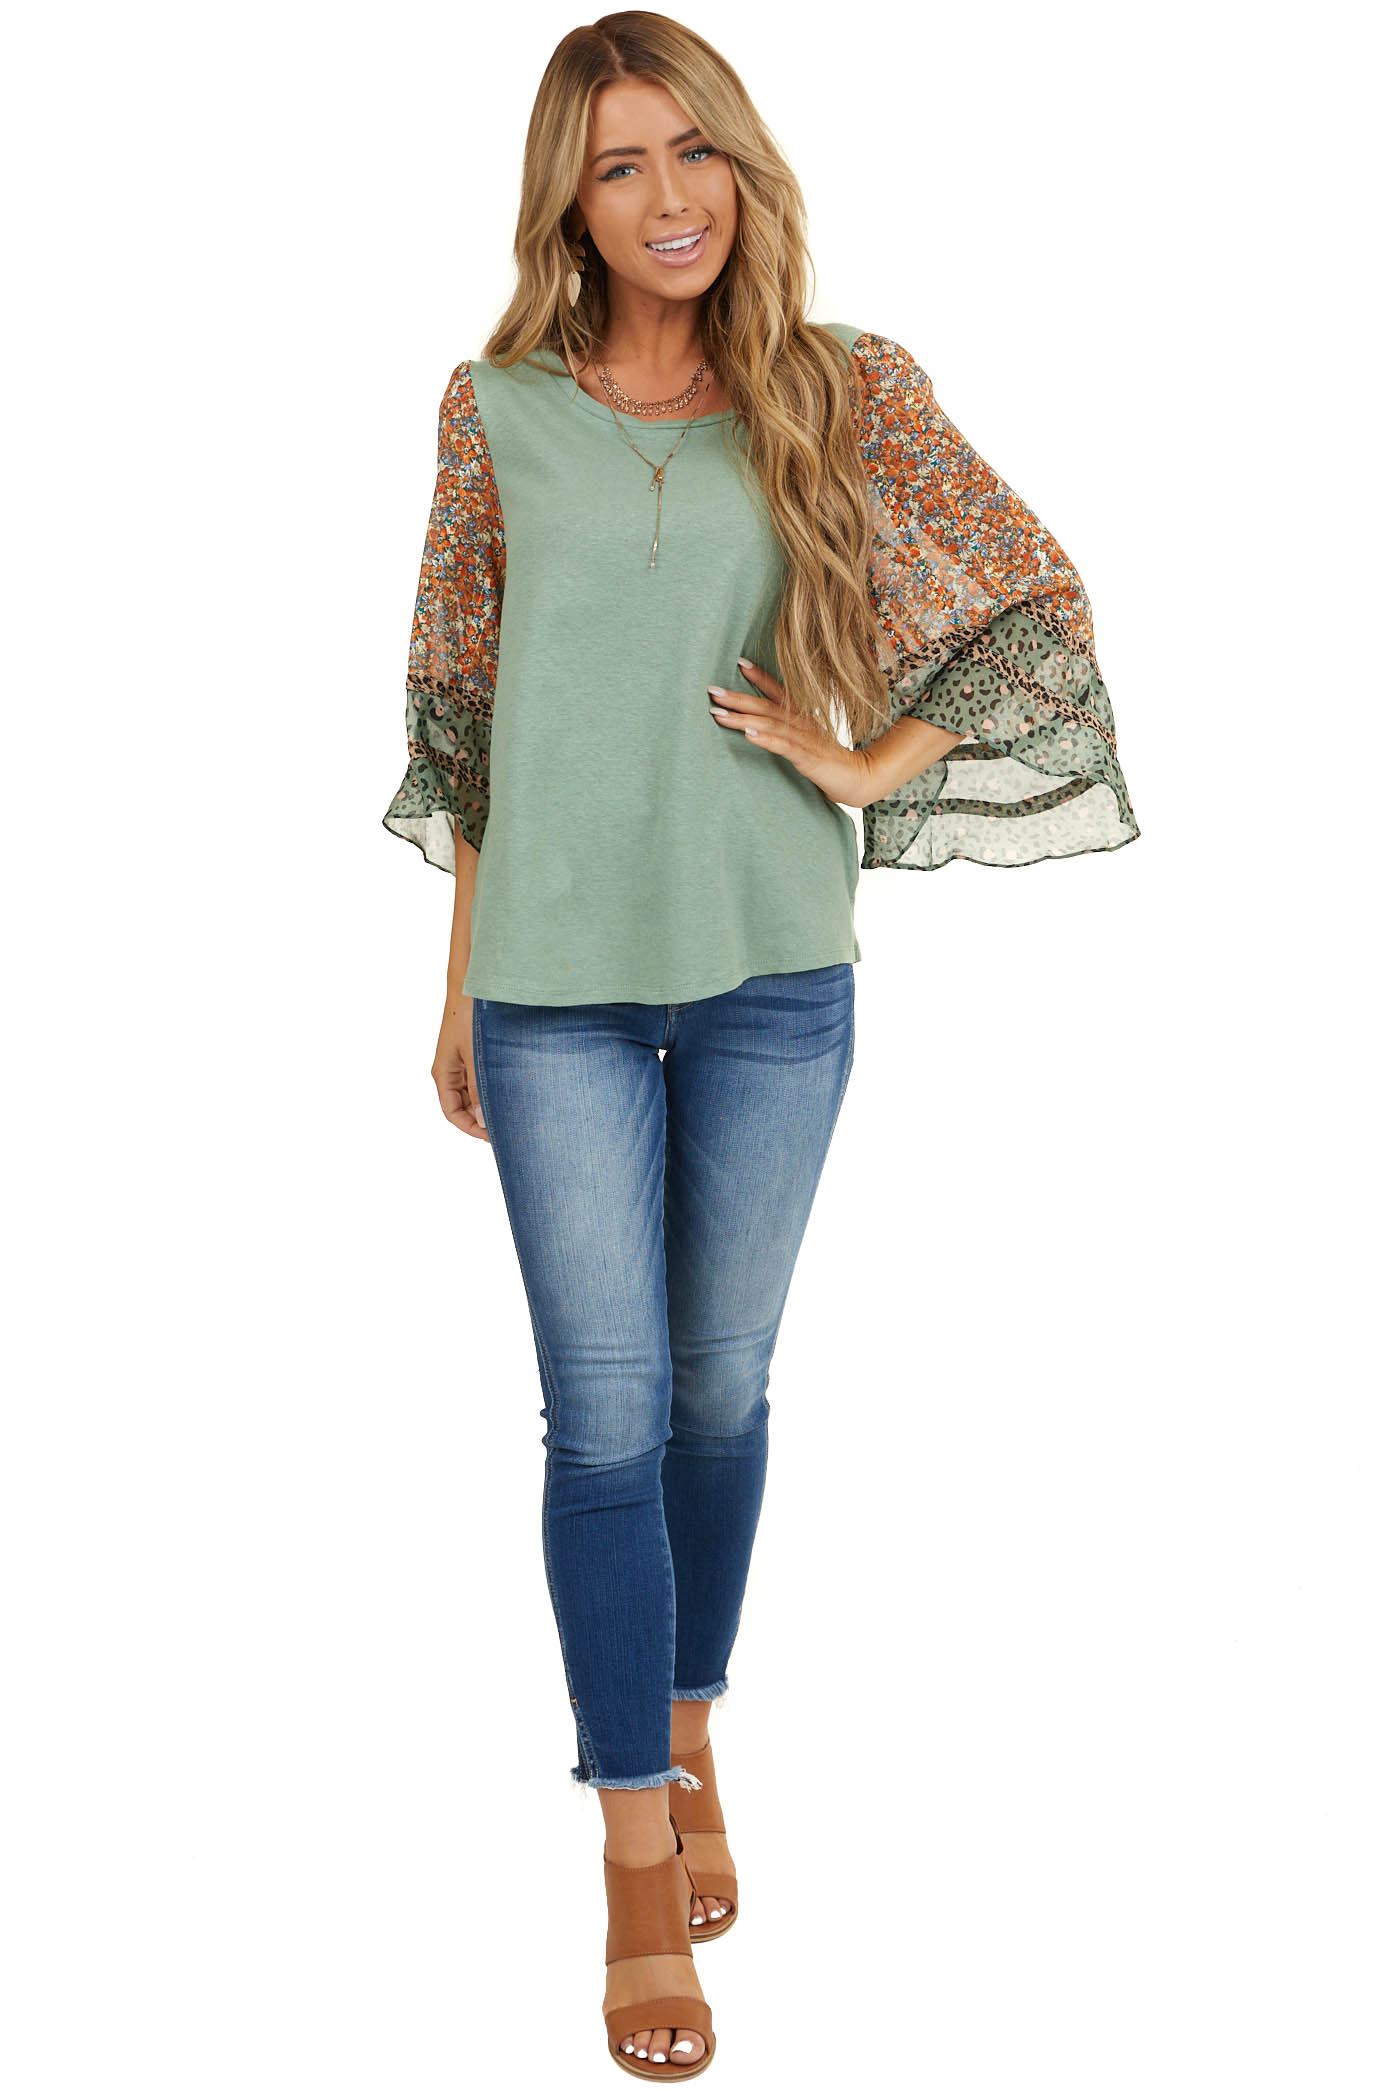 Sage Top with Floral and Leopard Print Bell Sleeves